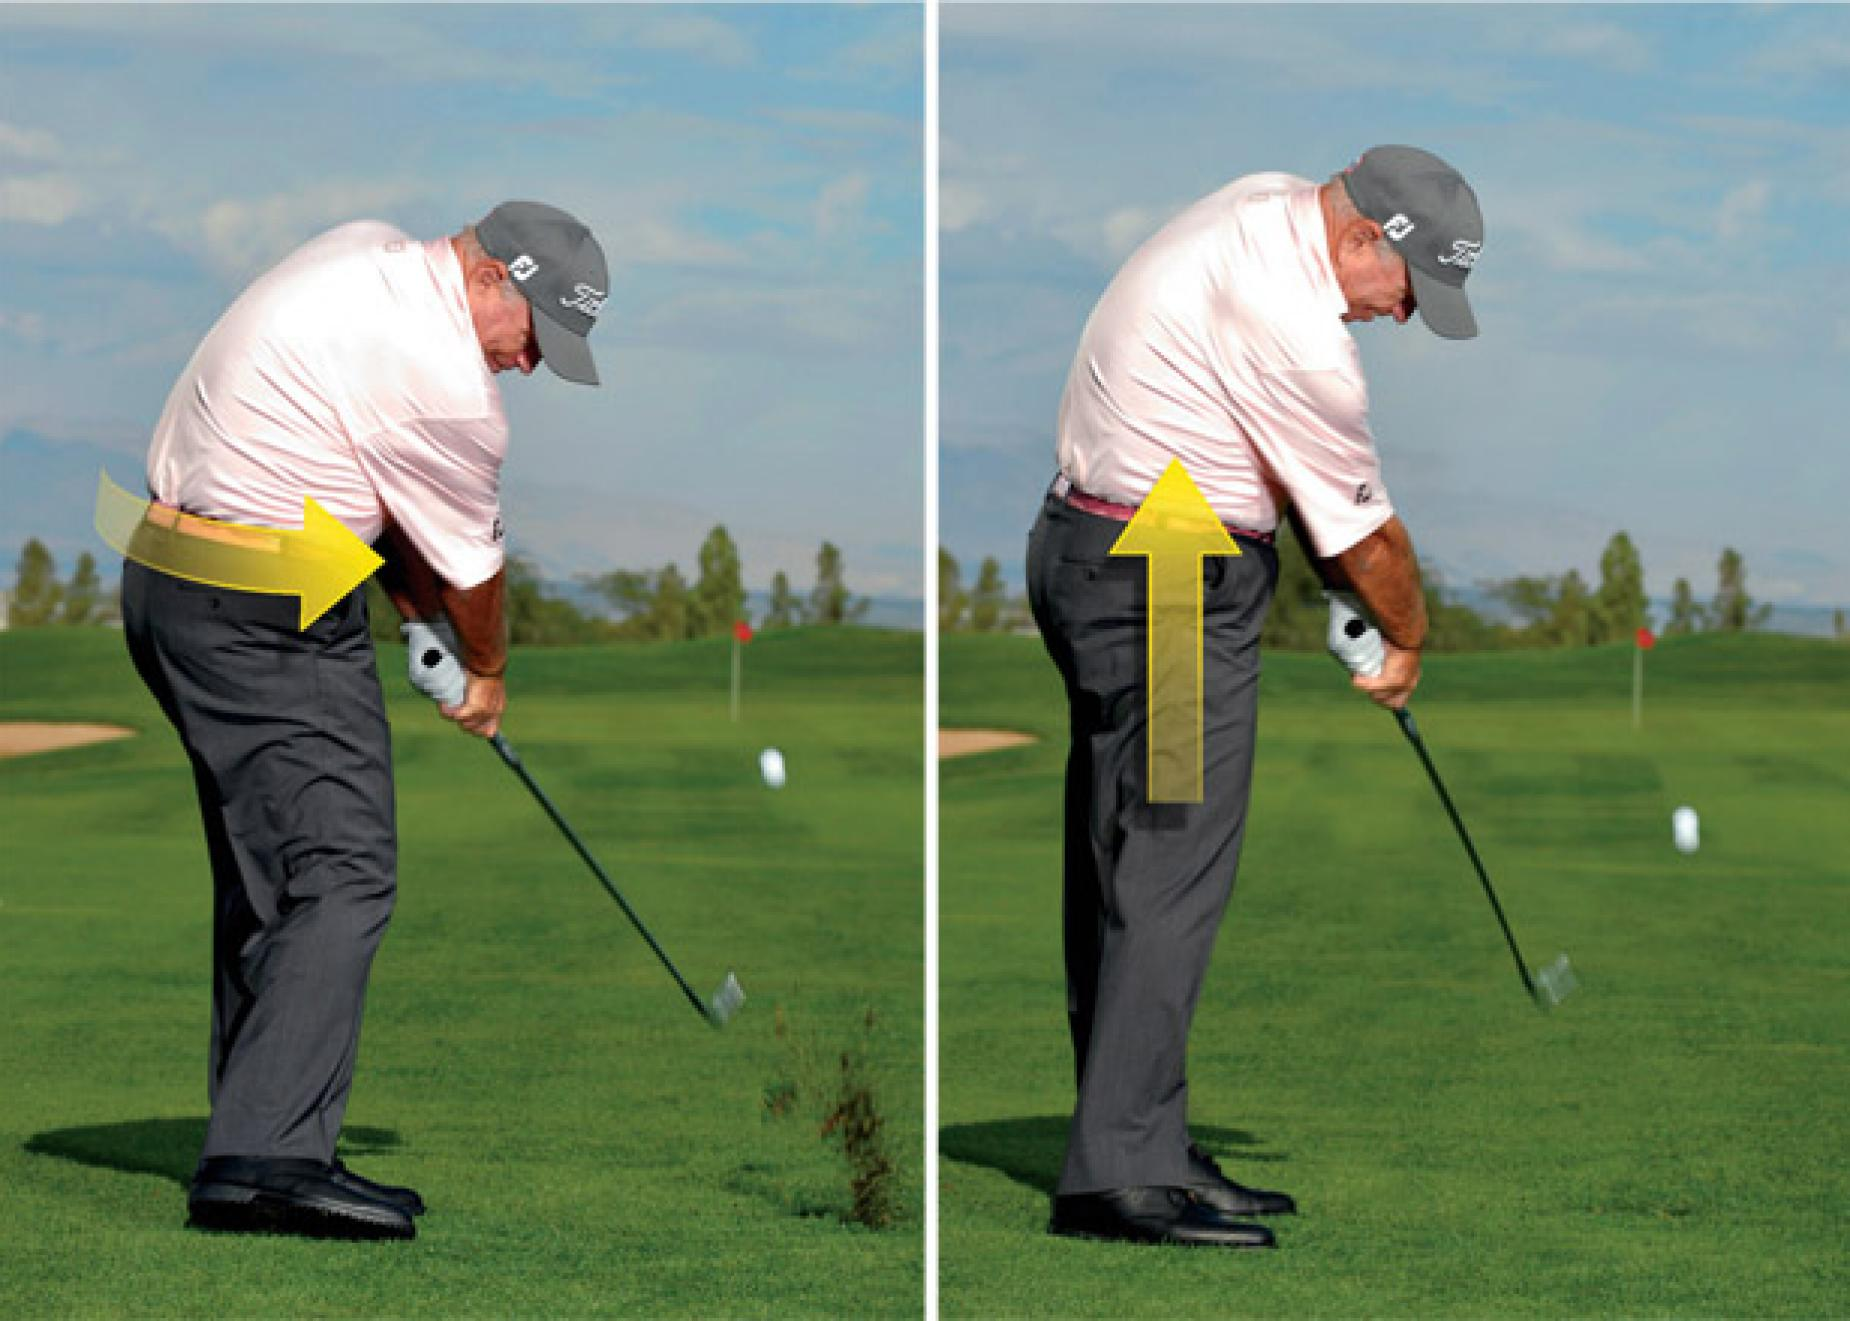 instruction-2013-04-inar01-butch-harmon-posture.jpg